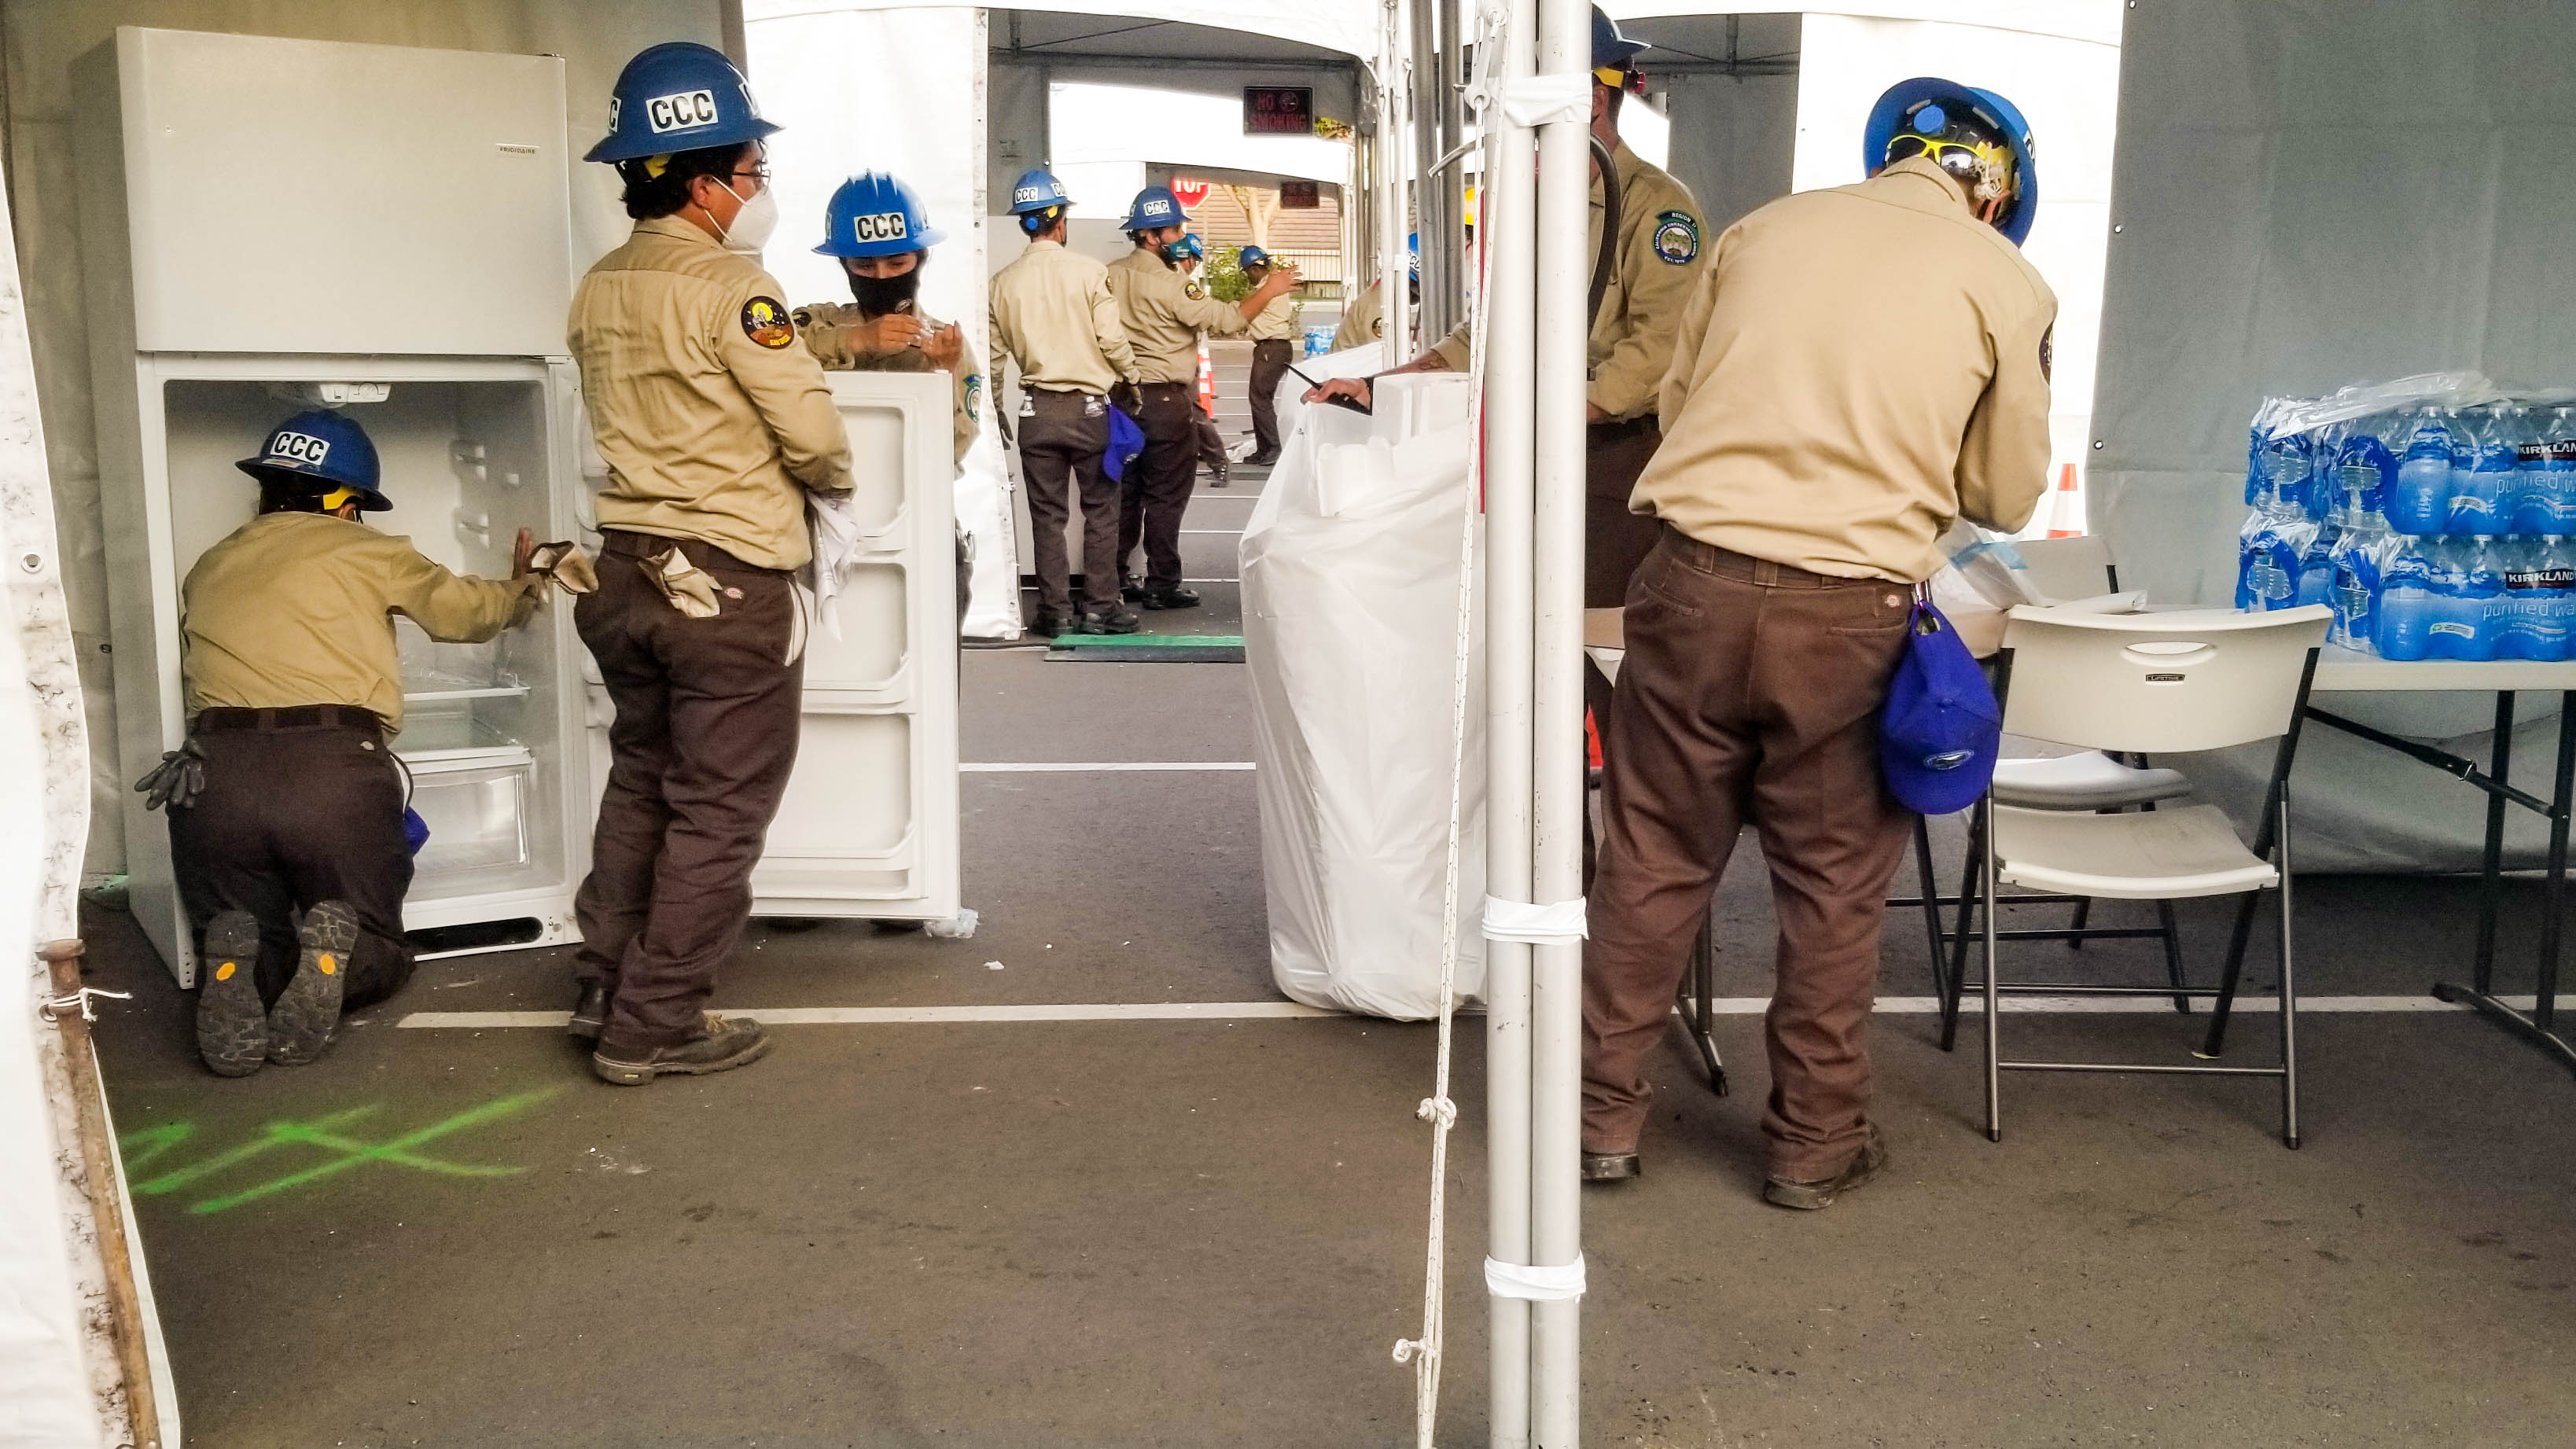 photo, corpsmembers load refrigerators with supplies inside white tents in a parking lot